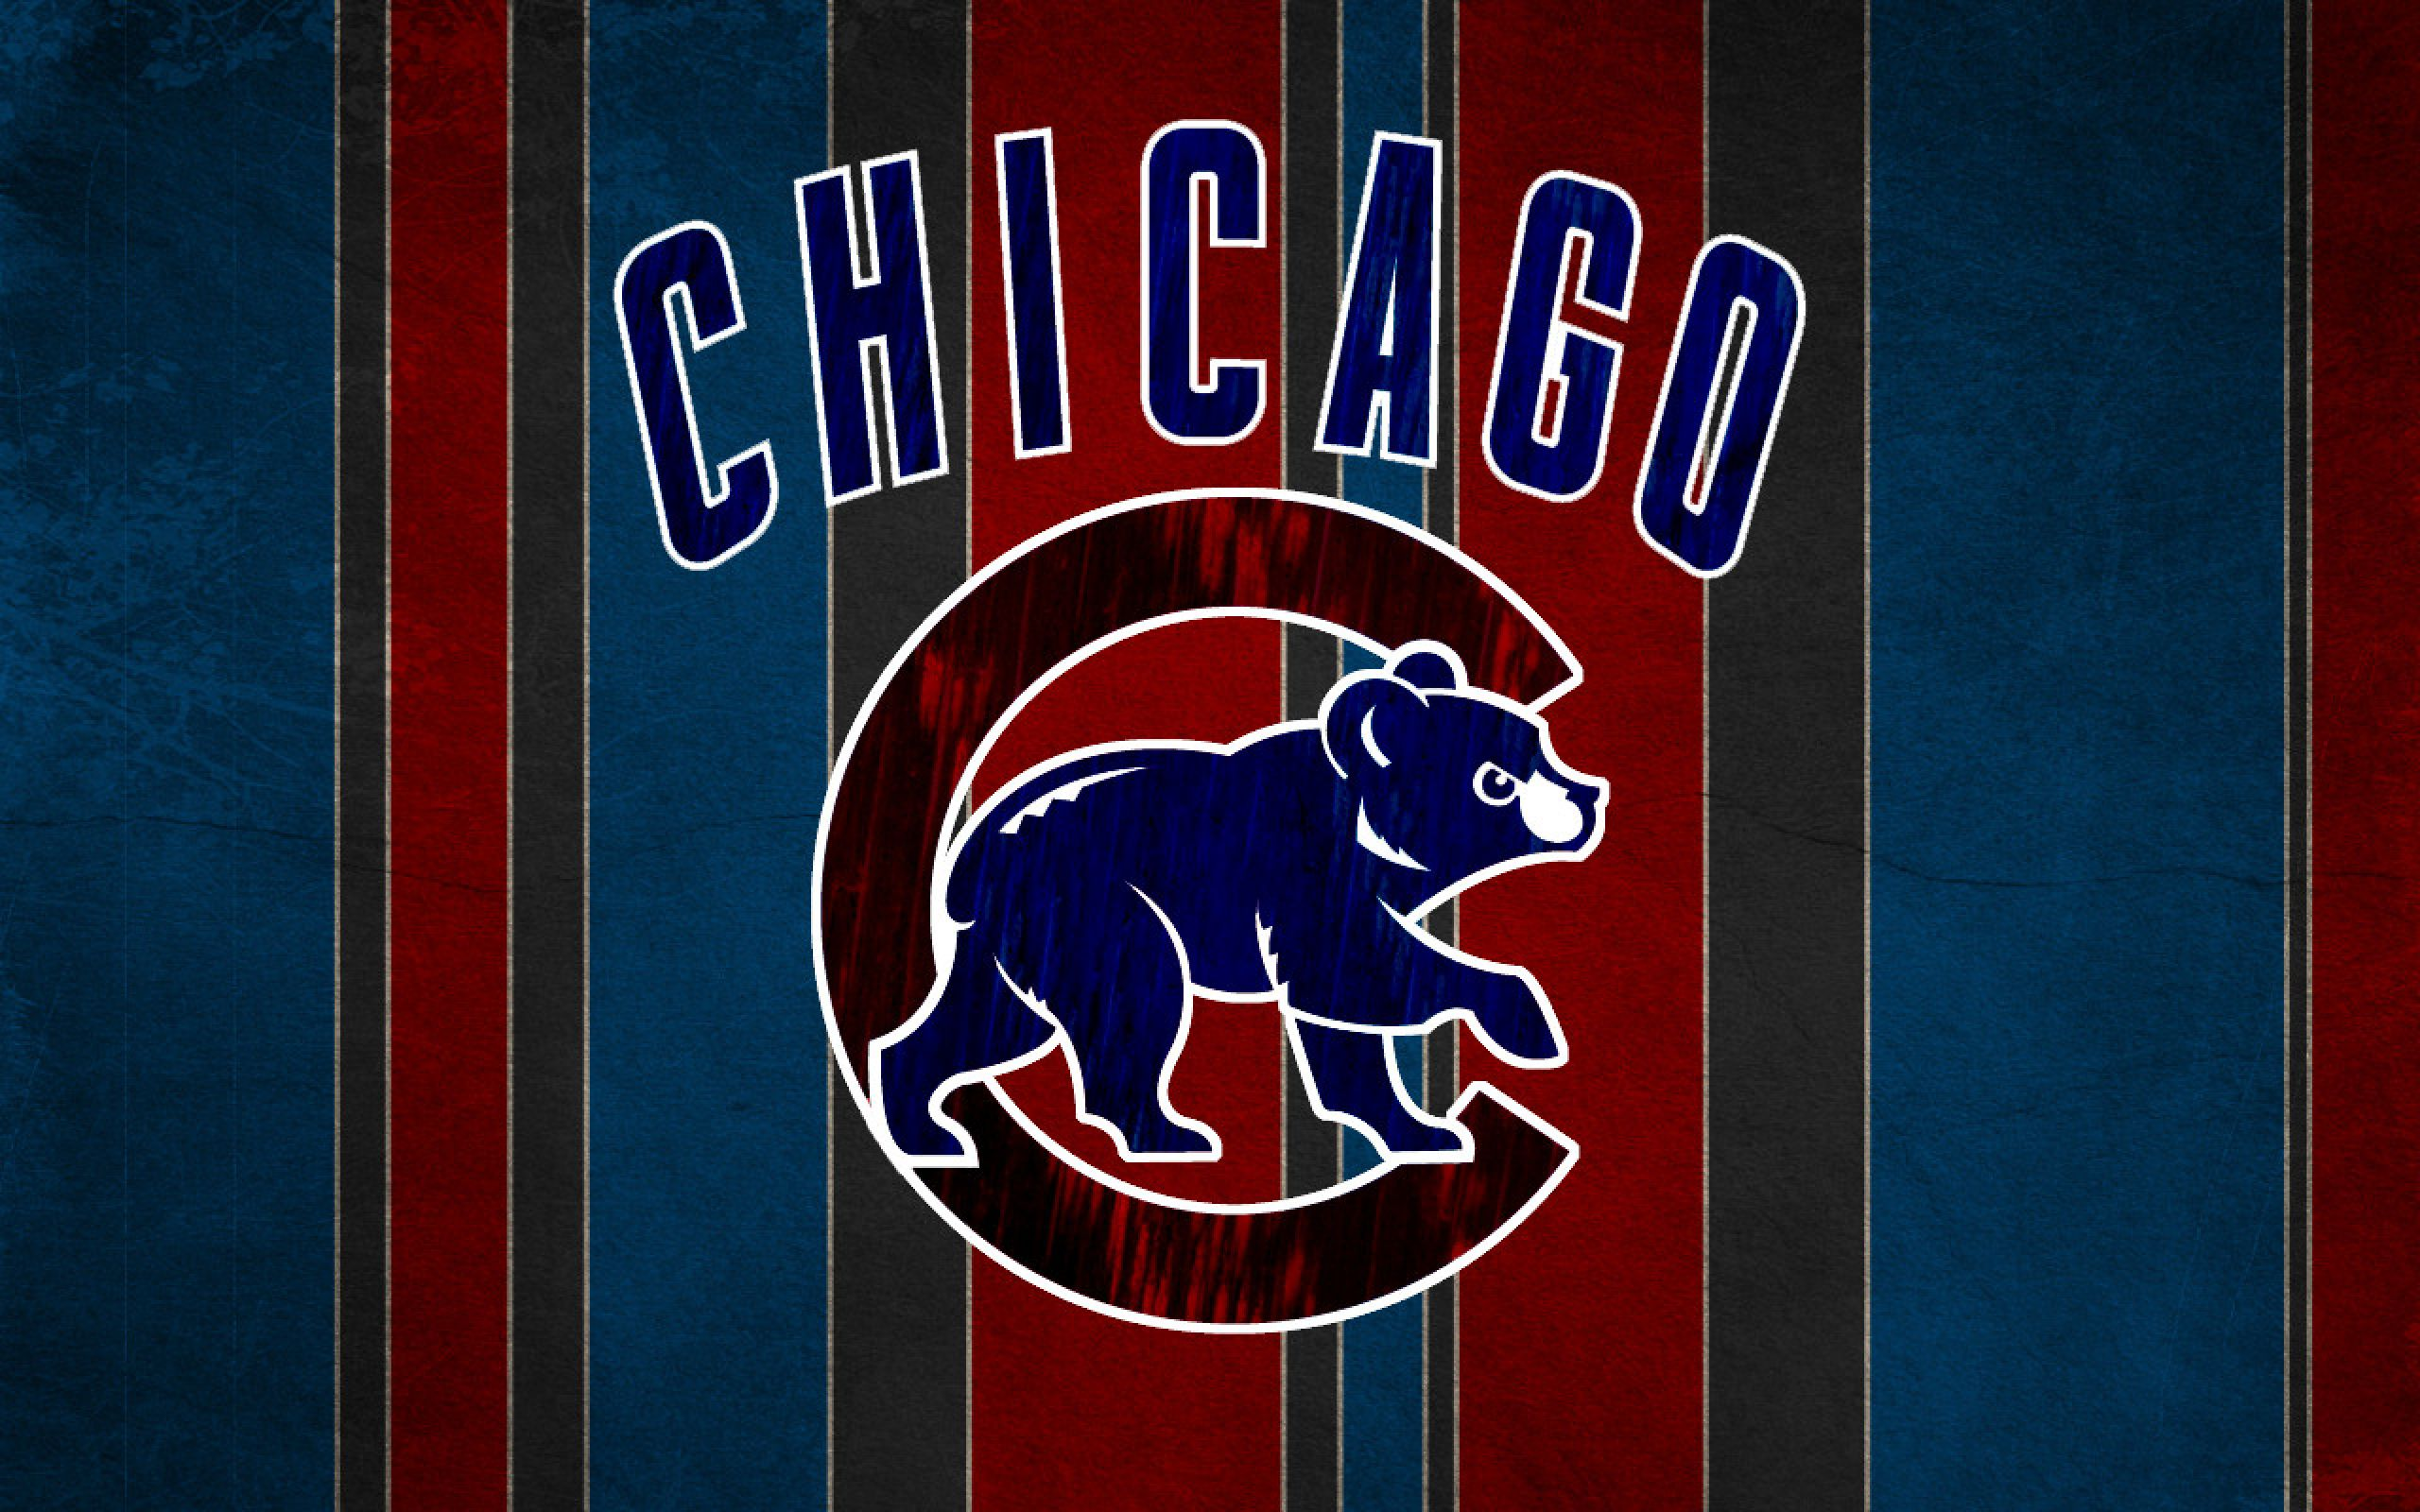 CHICAGO CUBS mlb baseball 58 wallpaper 2560x1600 232586 2560x1600